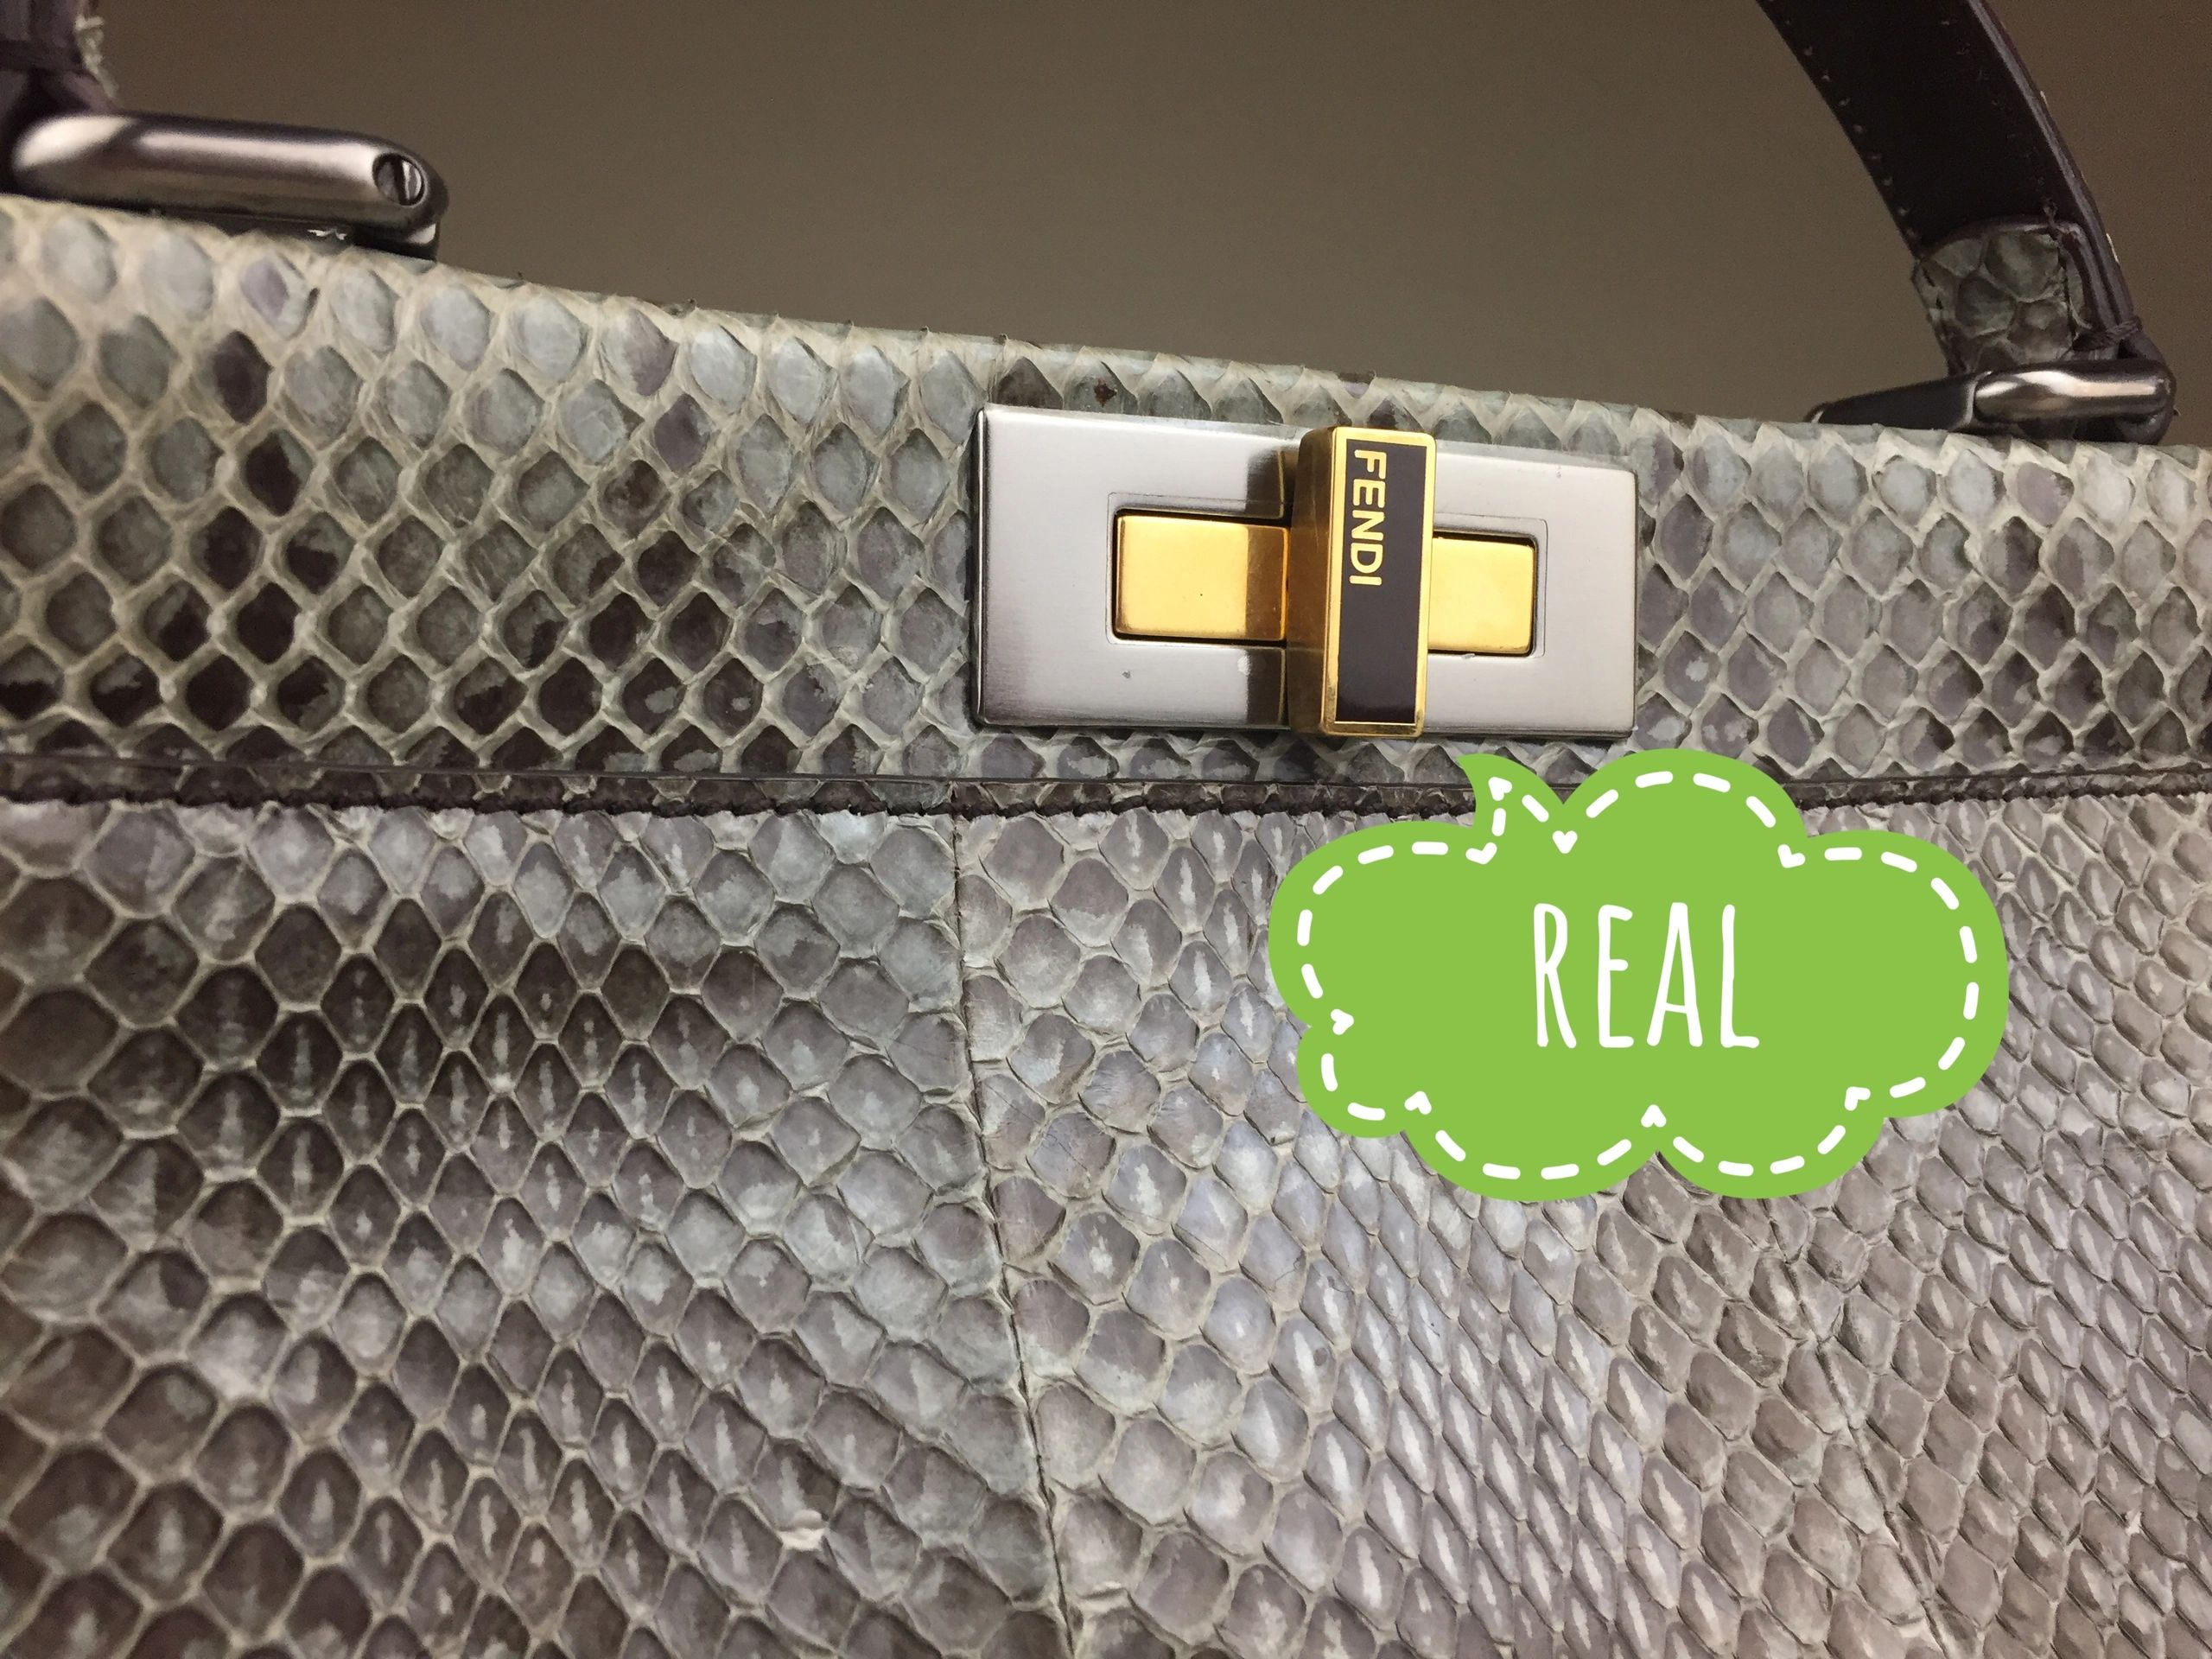 a7b8de4c83 How to tell a real FENDI handbag from fake. Authenticity guide